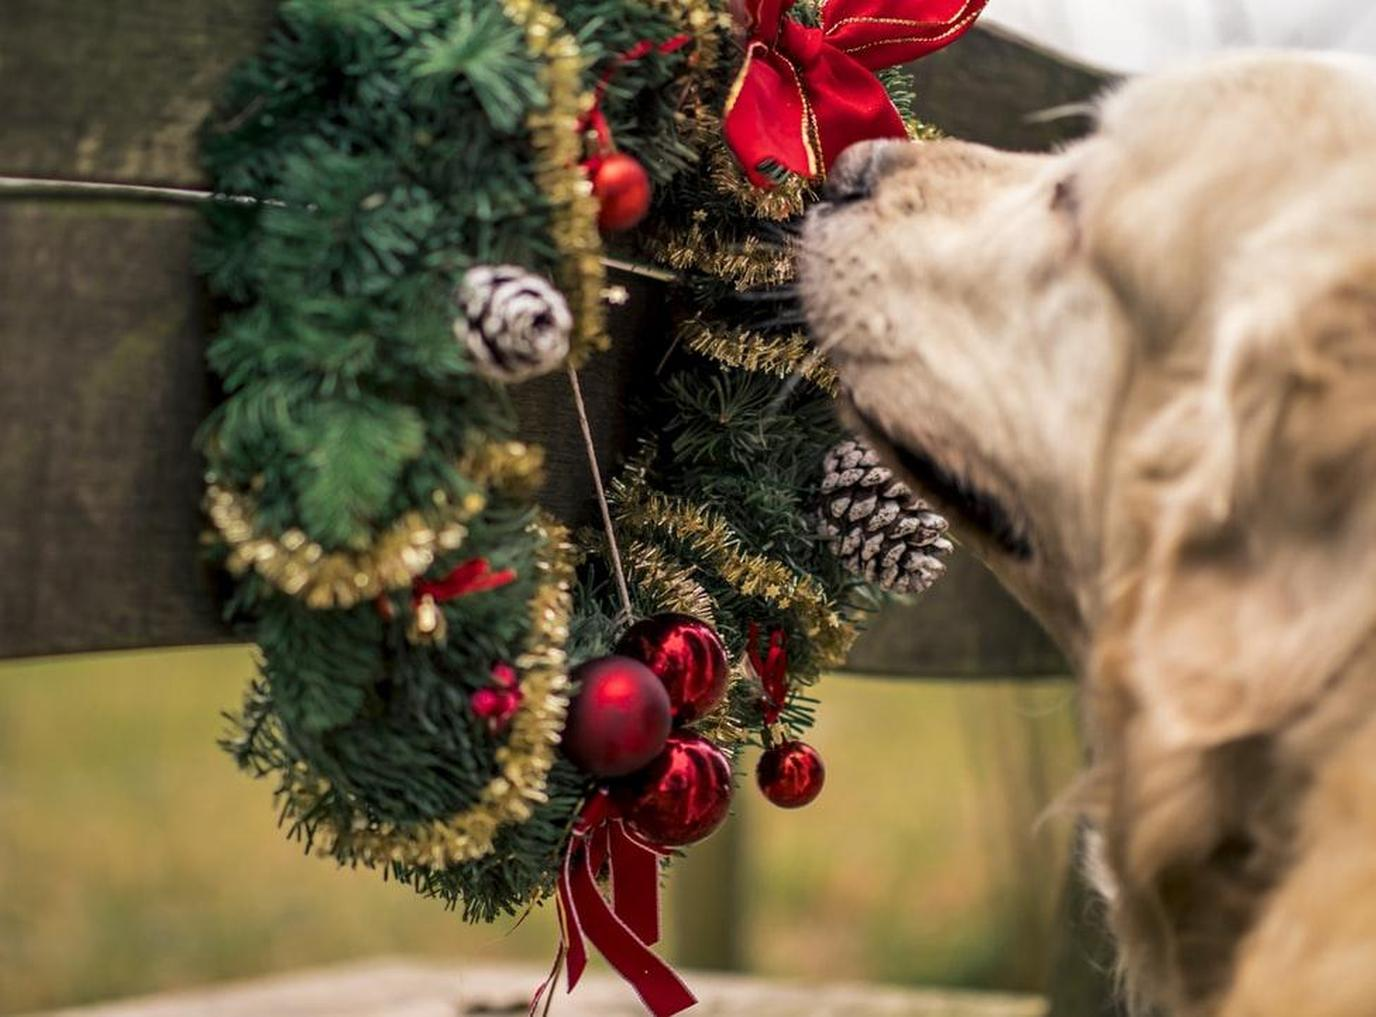 Keep your pet safe around Christmas decorations. Stay at a pet-friendly hotel!